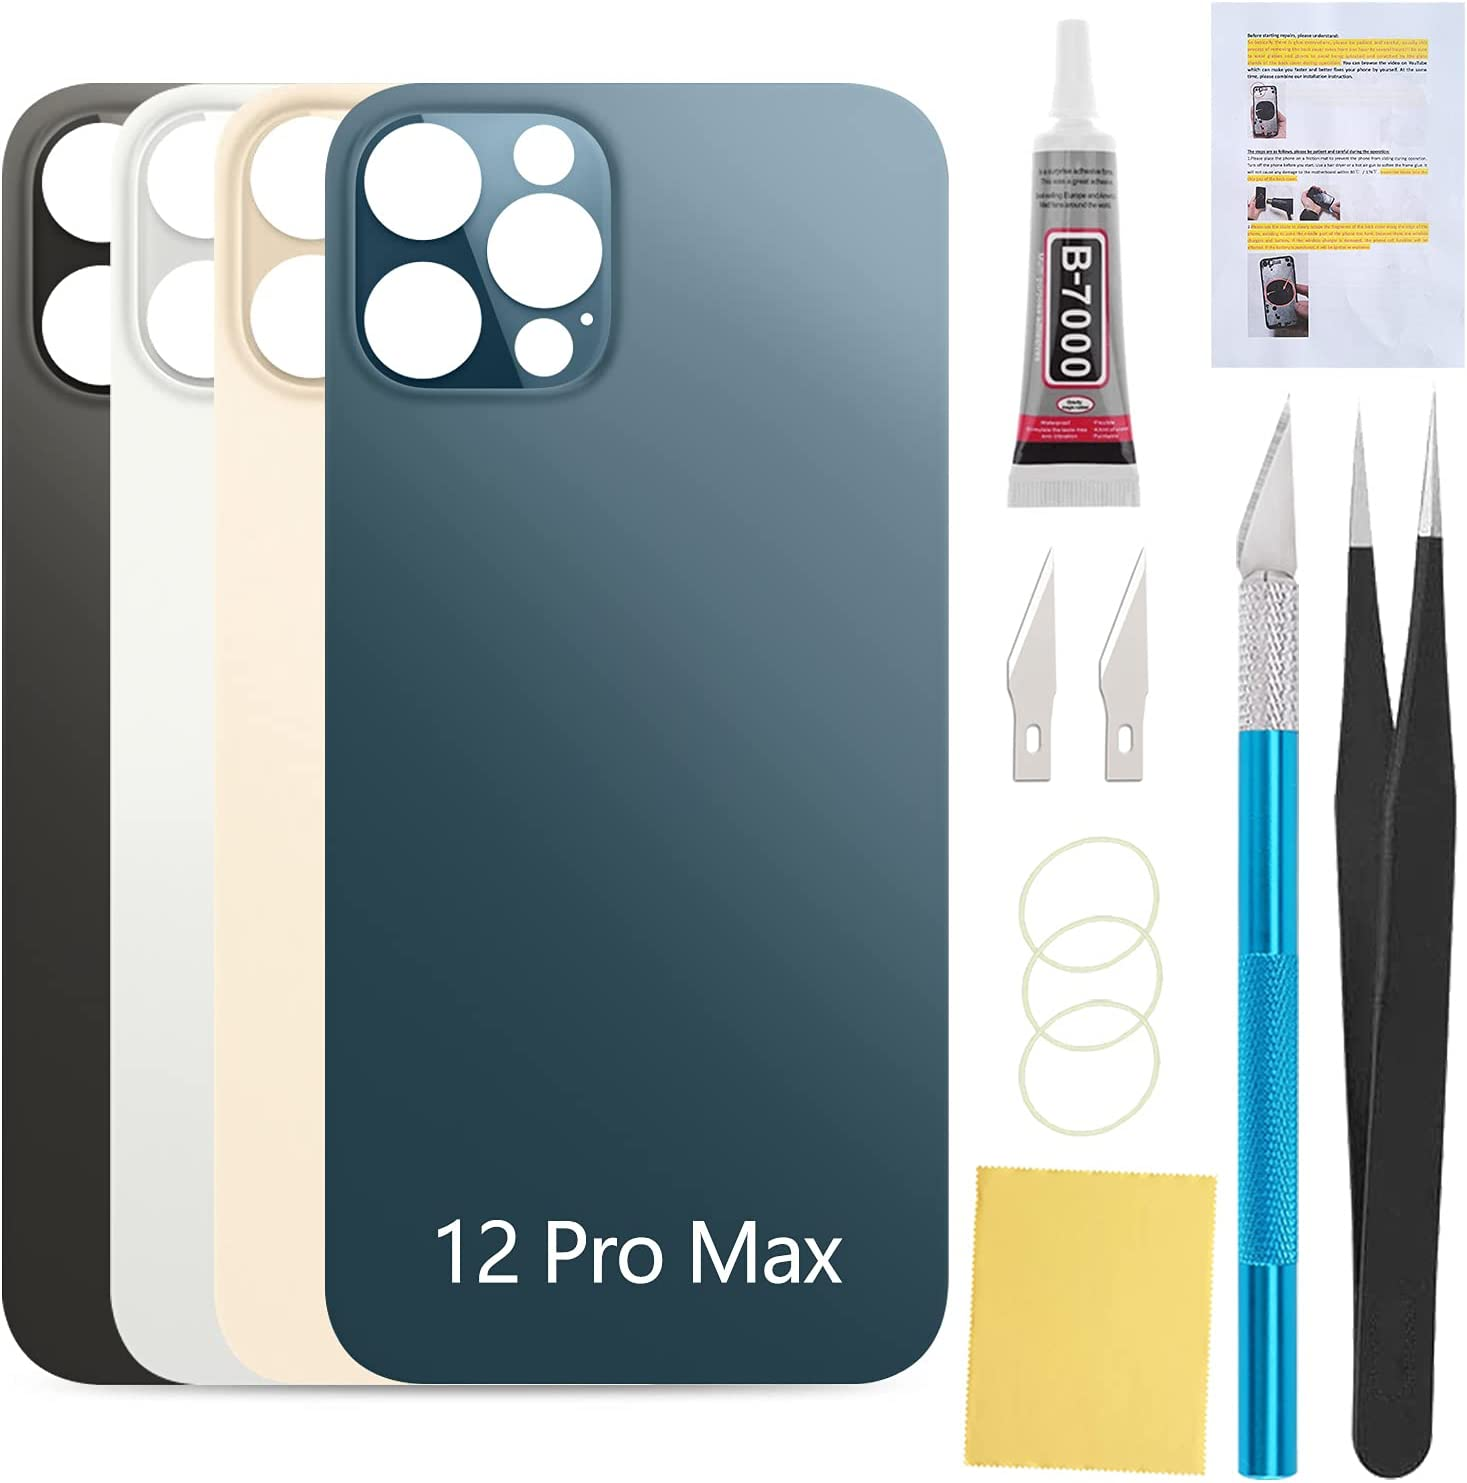 UooFide Back Cover Glass Replacement Compatible with iPhone 12 Pro Max 6.7 Inches All Carriers with Installation Manual + Repair Tool Kit (Pacific Blue)